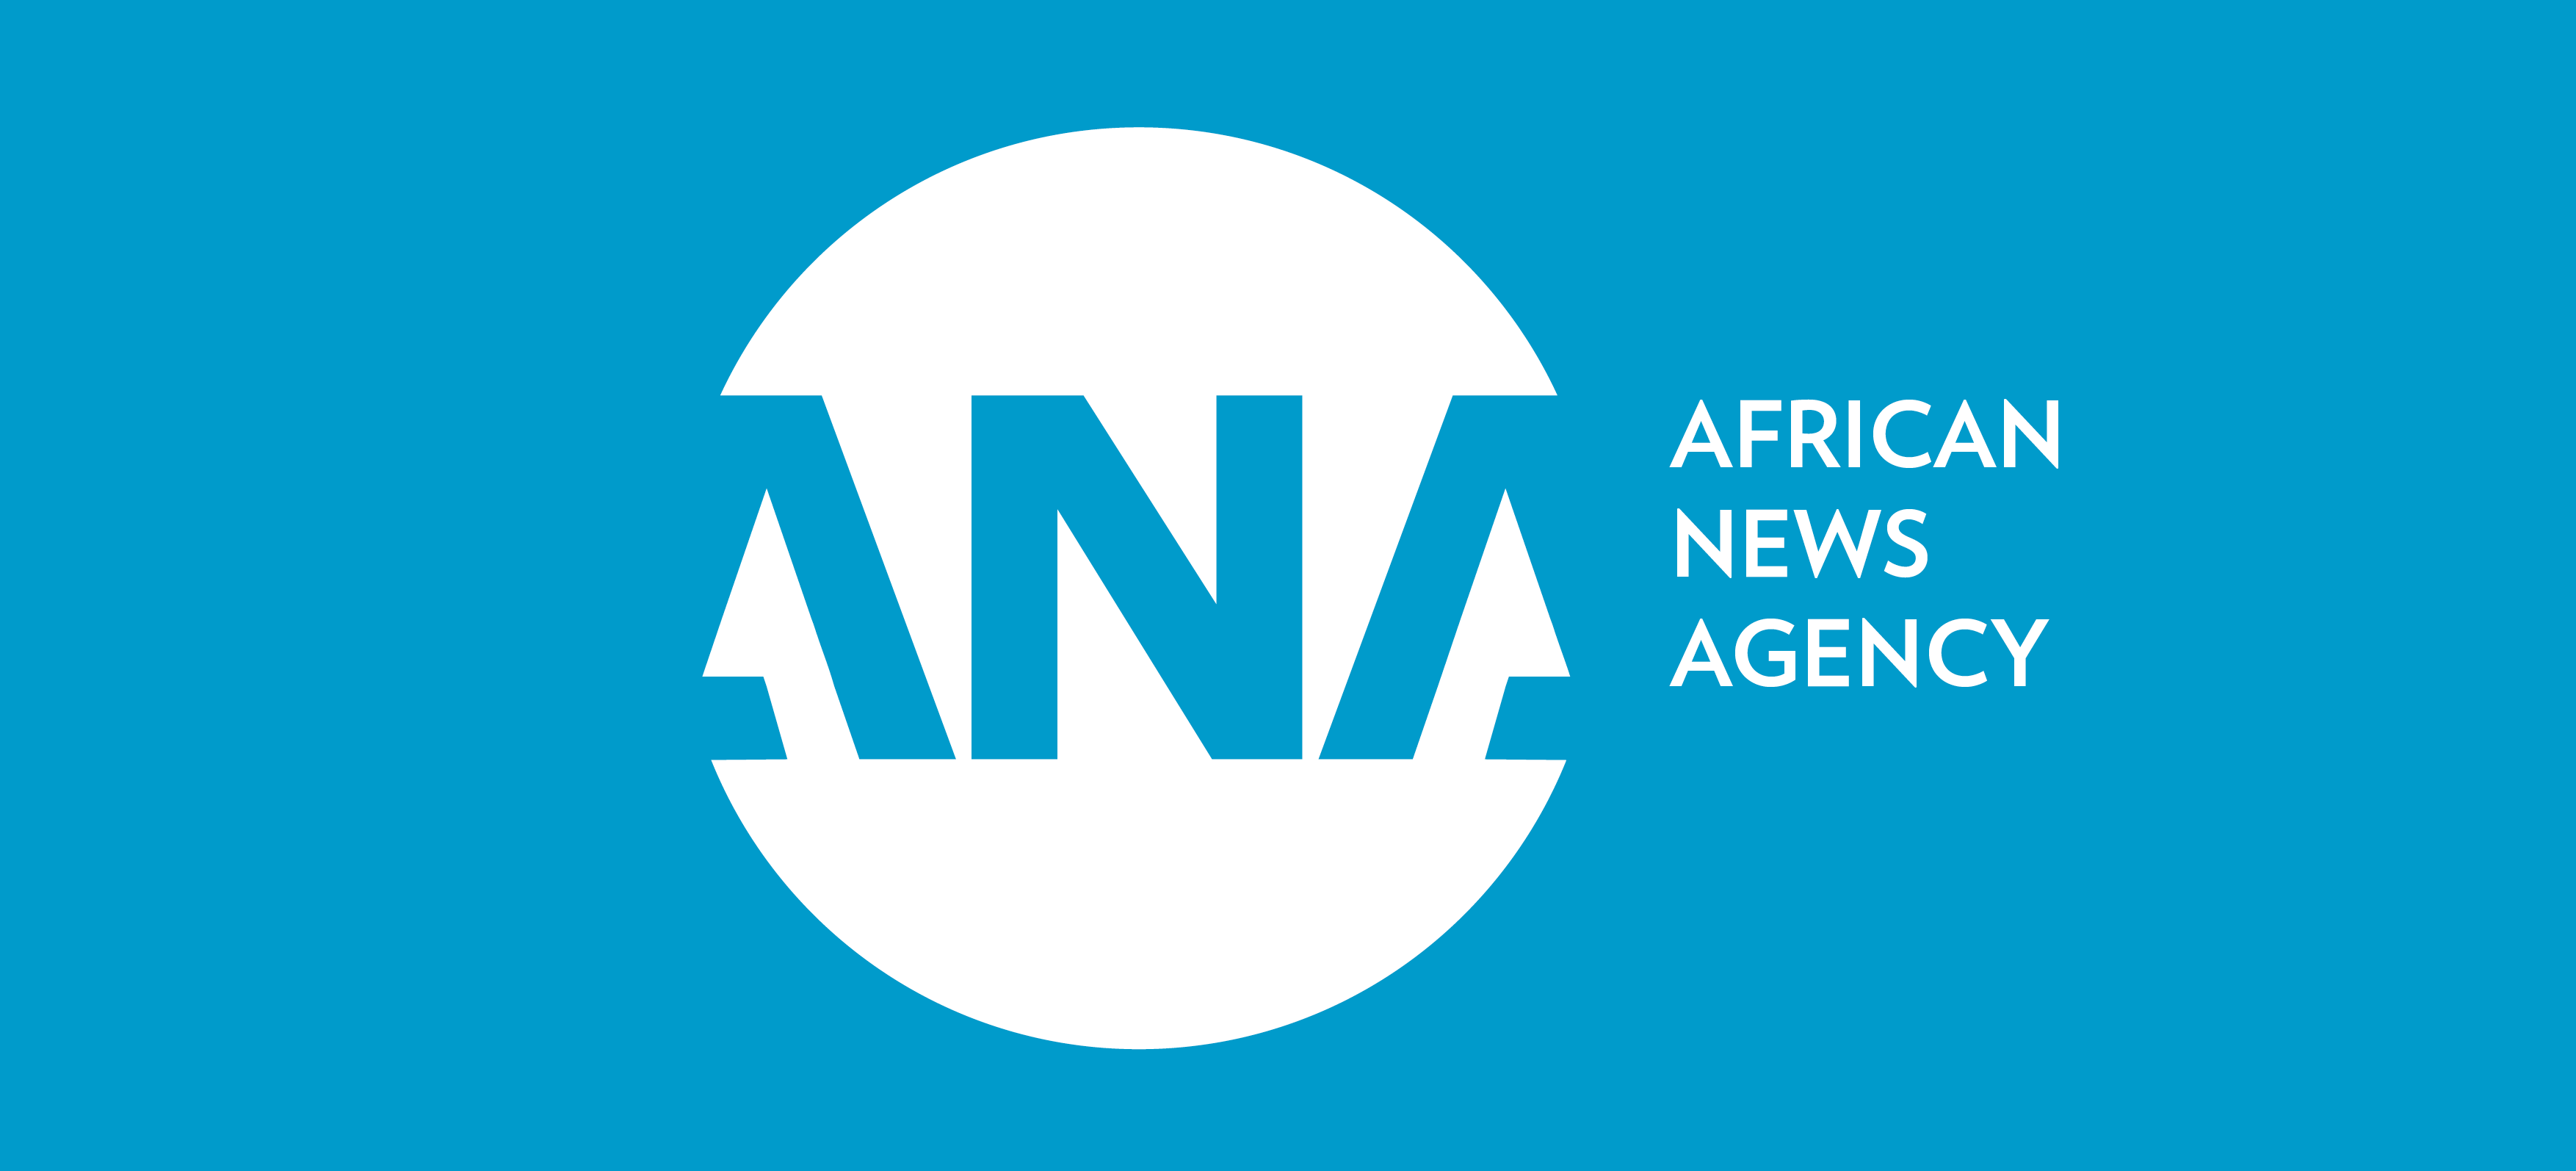 African News Agency